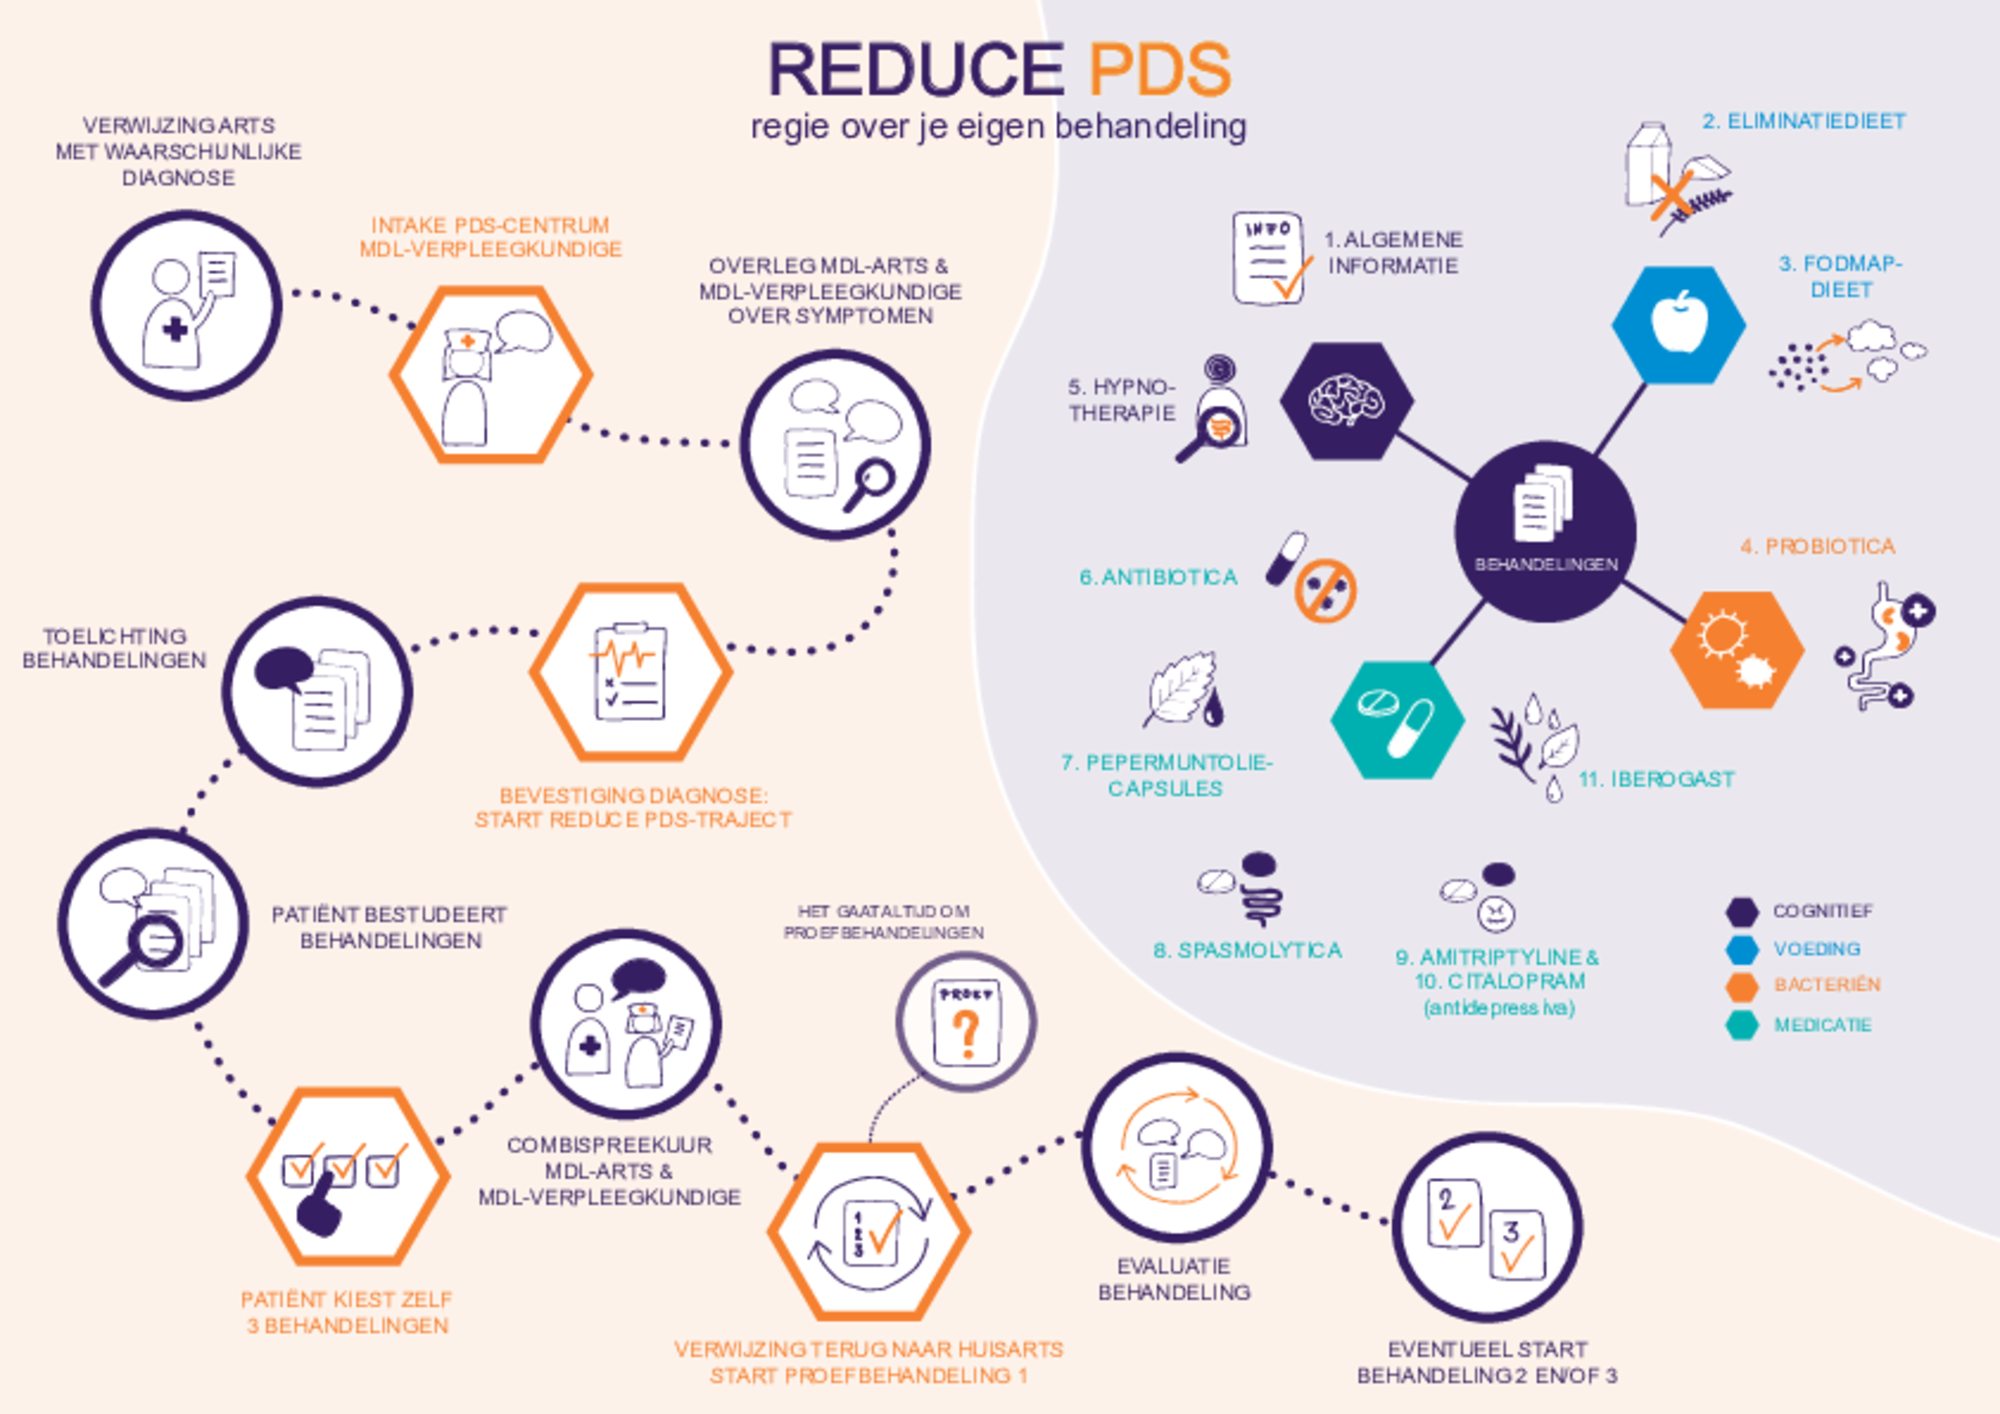 Reduce PDS